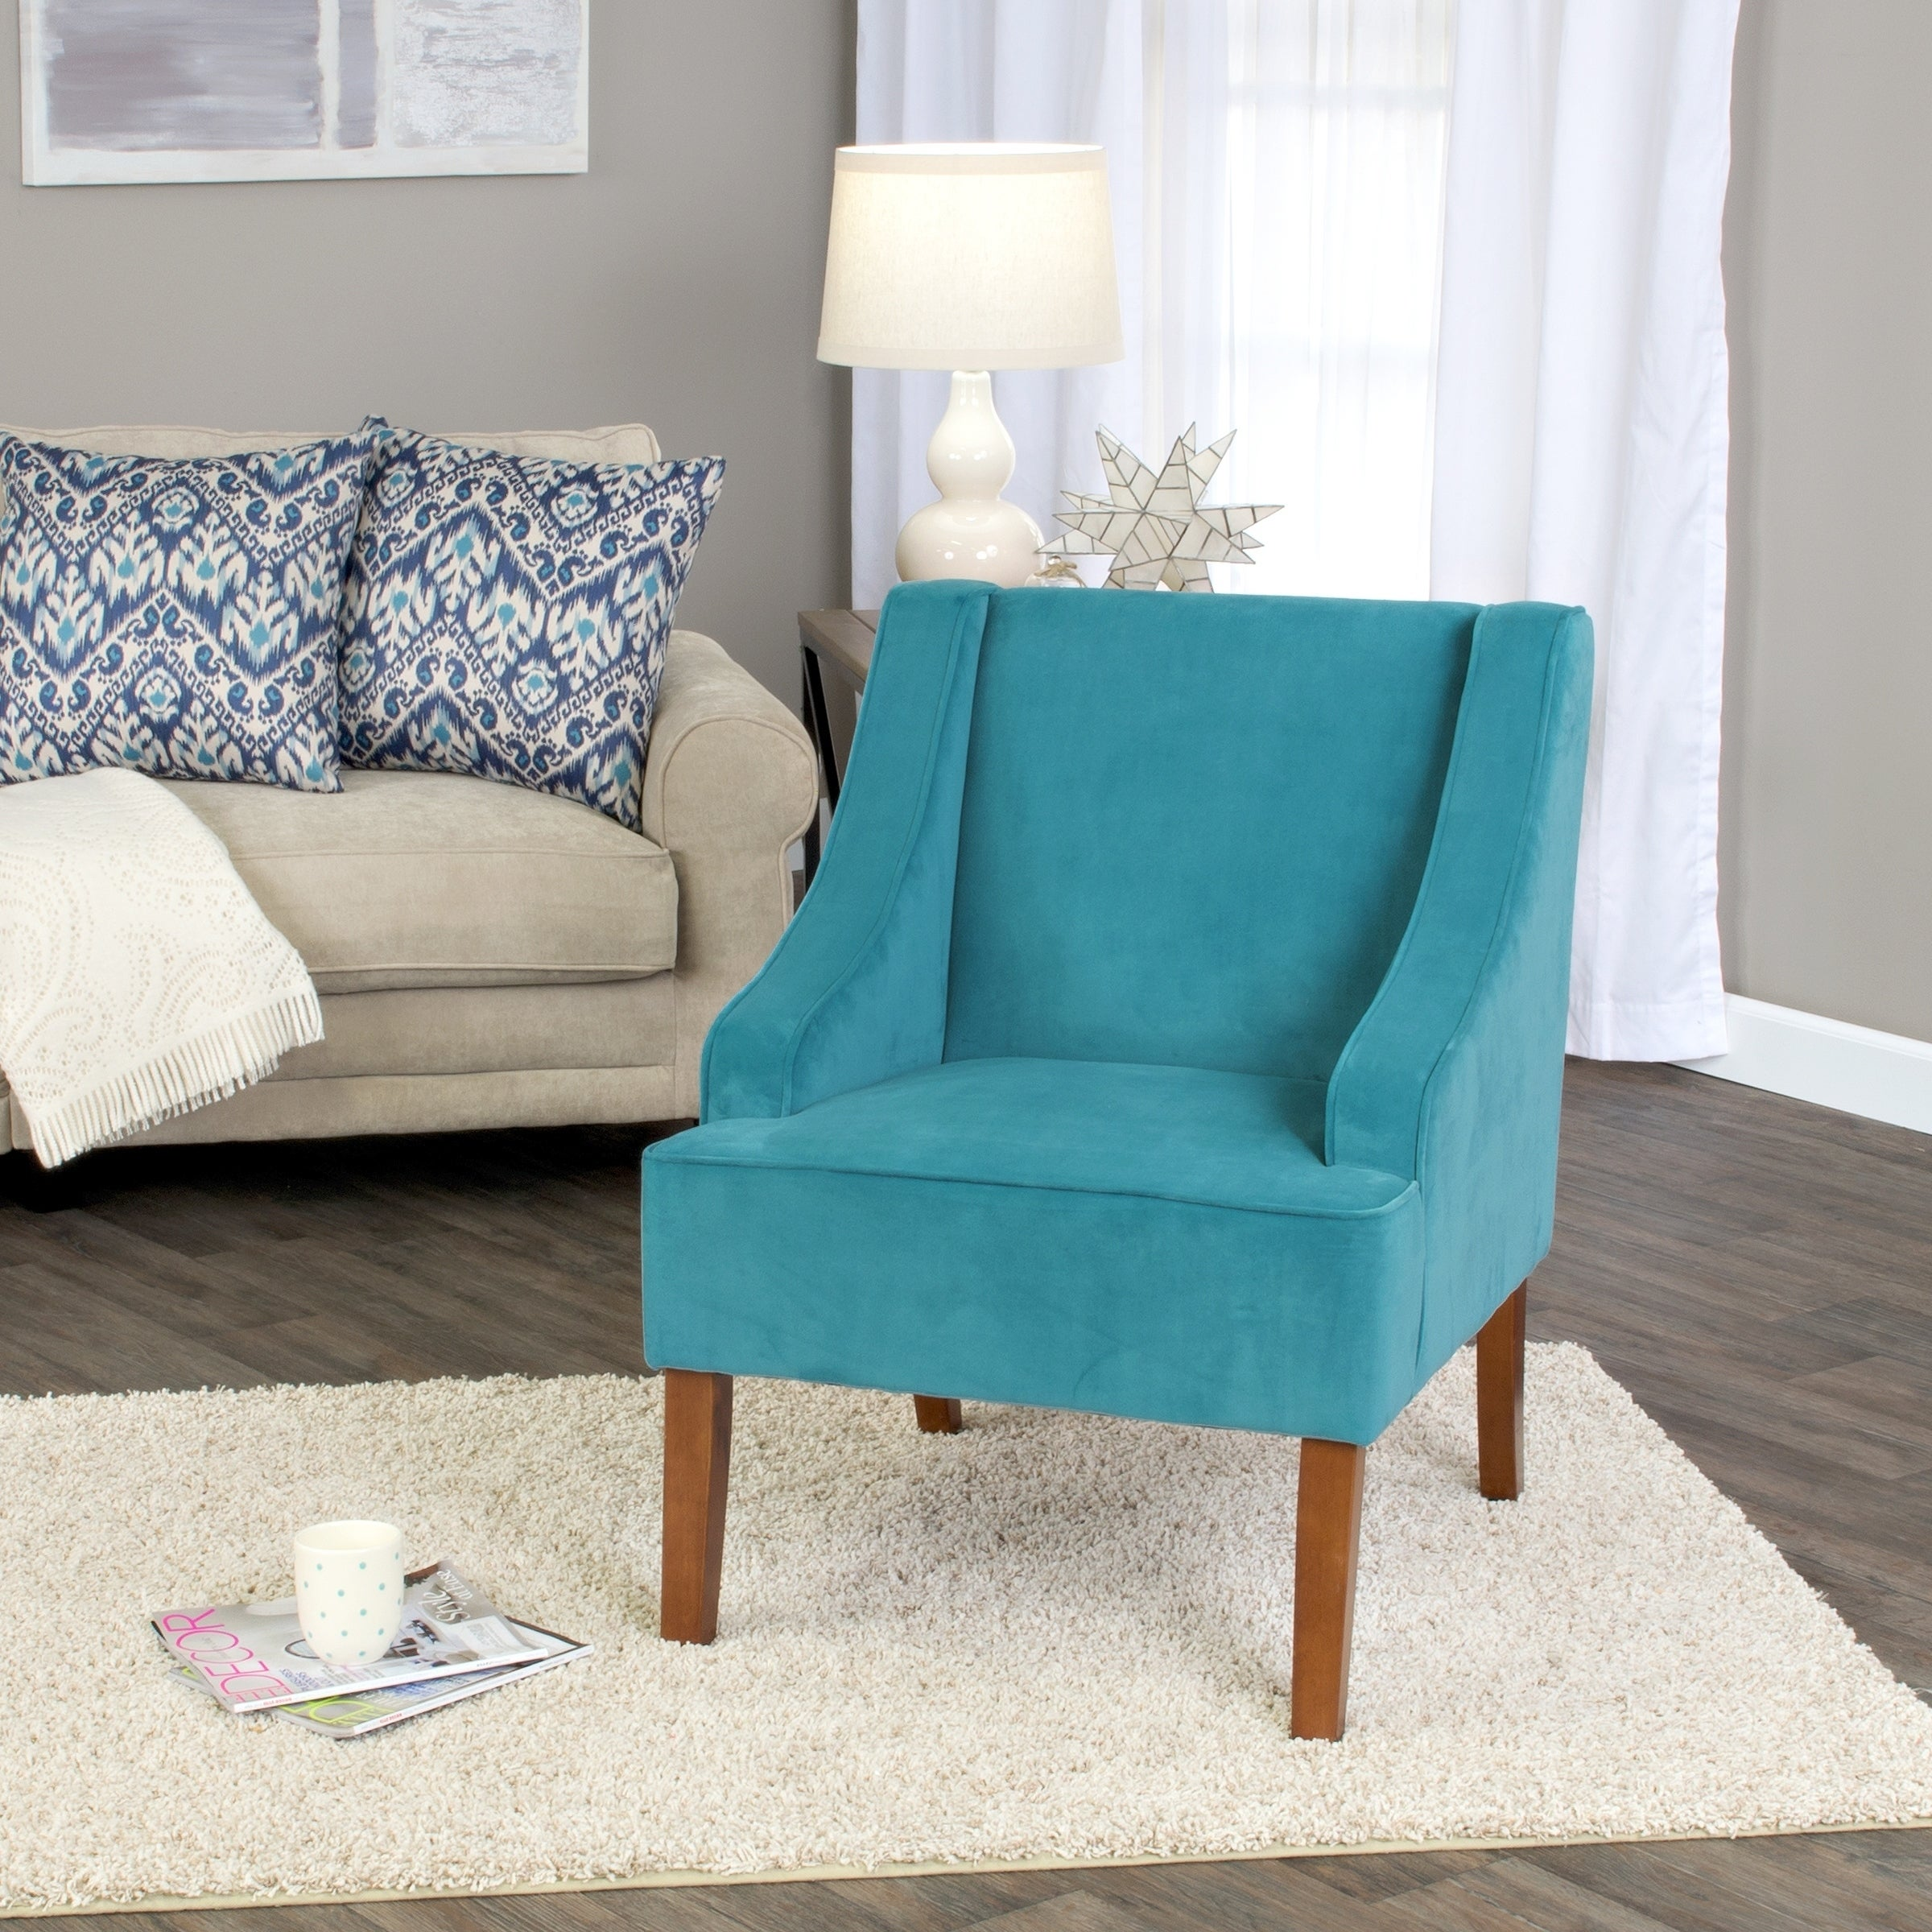 Contemporary Teal Or Turquoise Accent Chair: HomePop Swoop Arm Accent Chair In Teal (Turquoise) Velvet